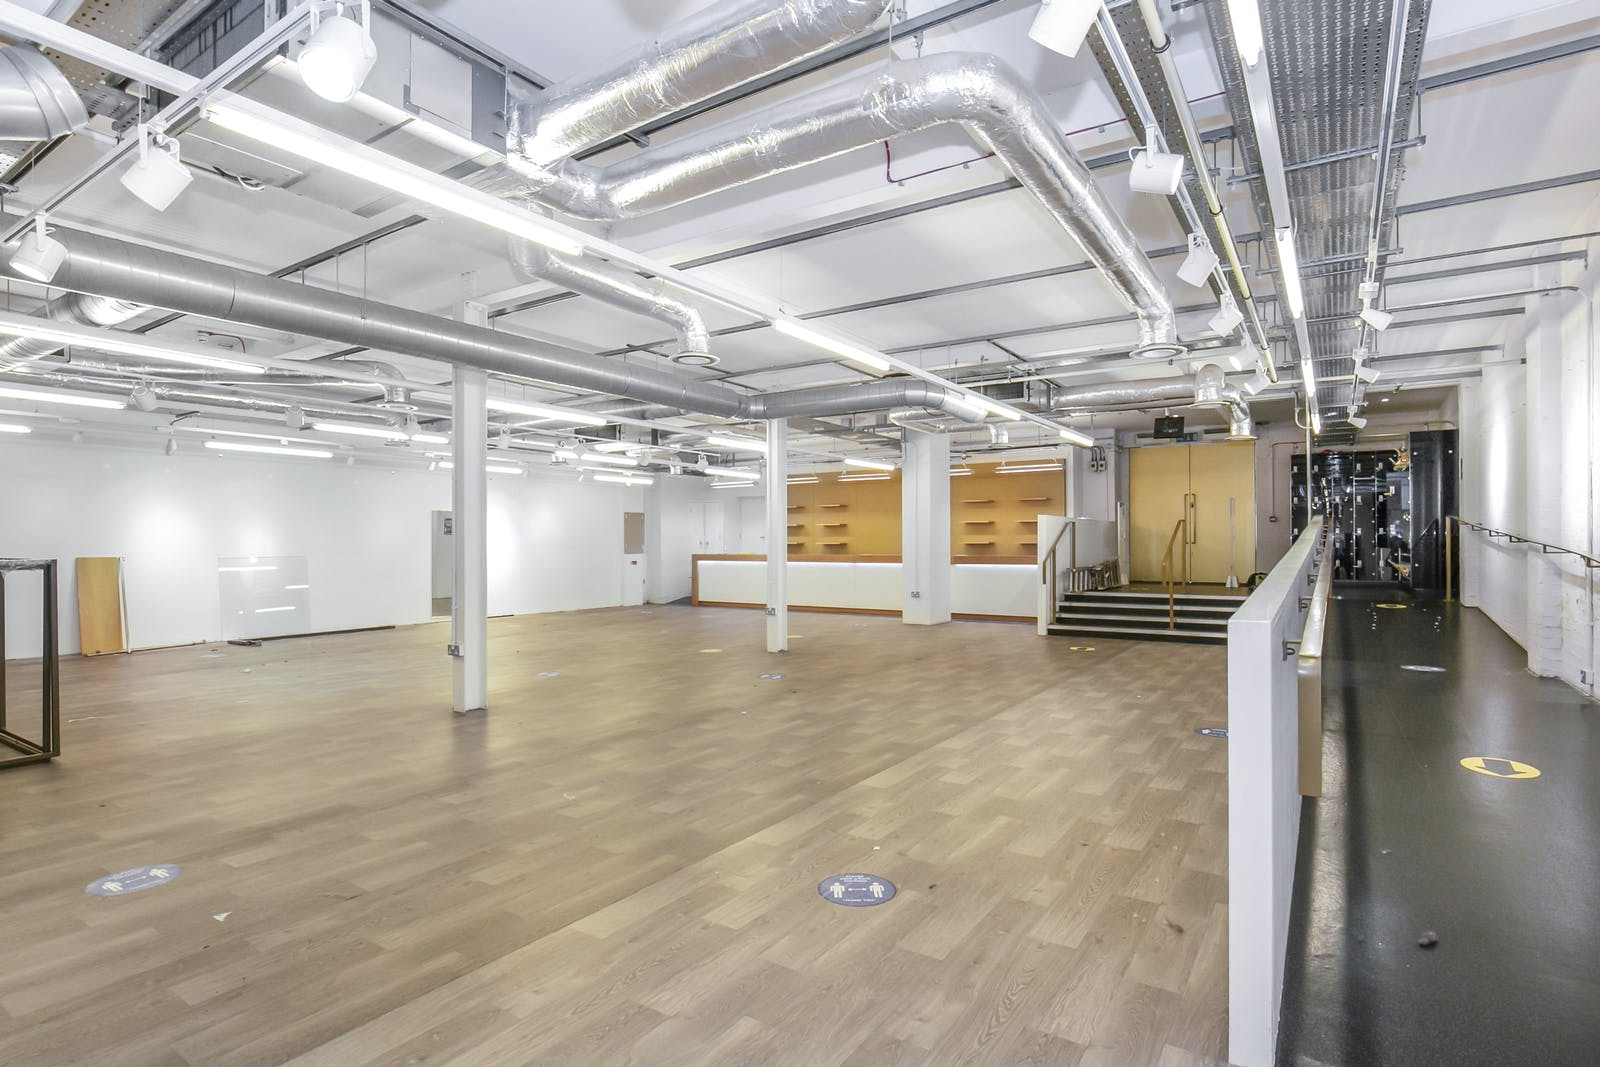 7-9 Chatham Place, London, Office / Industrial / Trade Counter / Retail / Showroom / Leisure / D2 (Assembly and Leisure) To Let - S25C7992.jpg